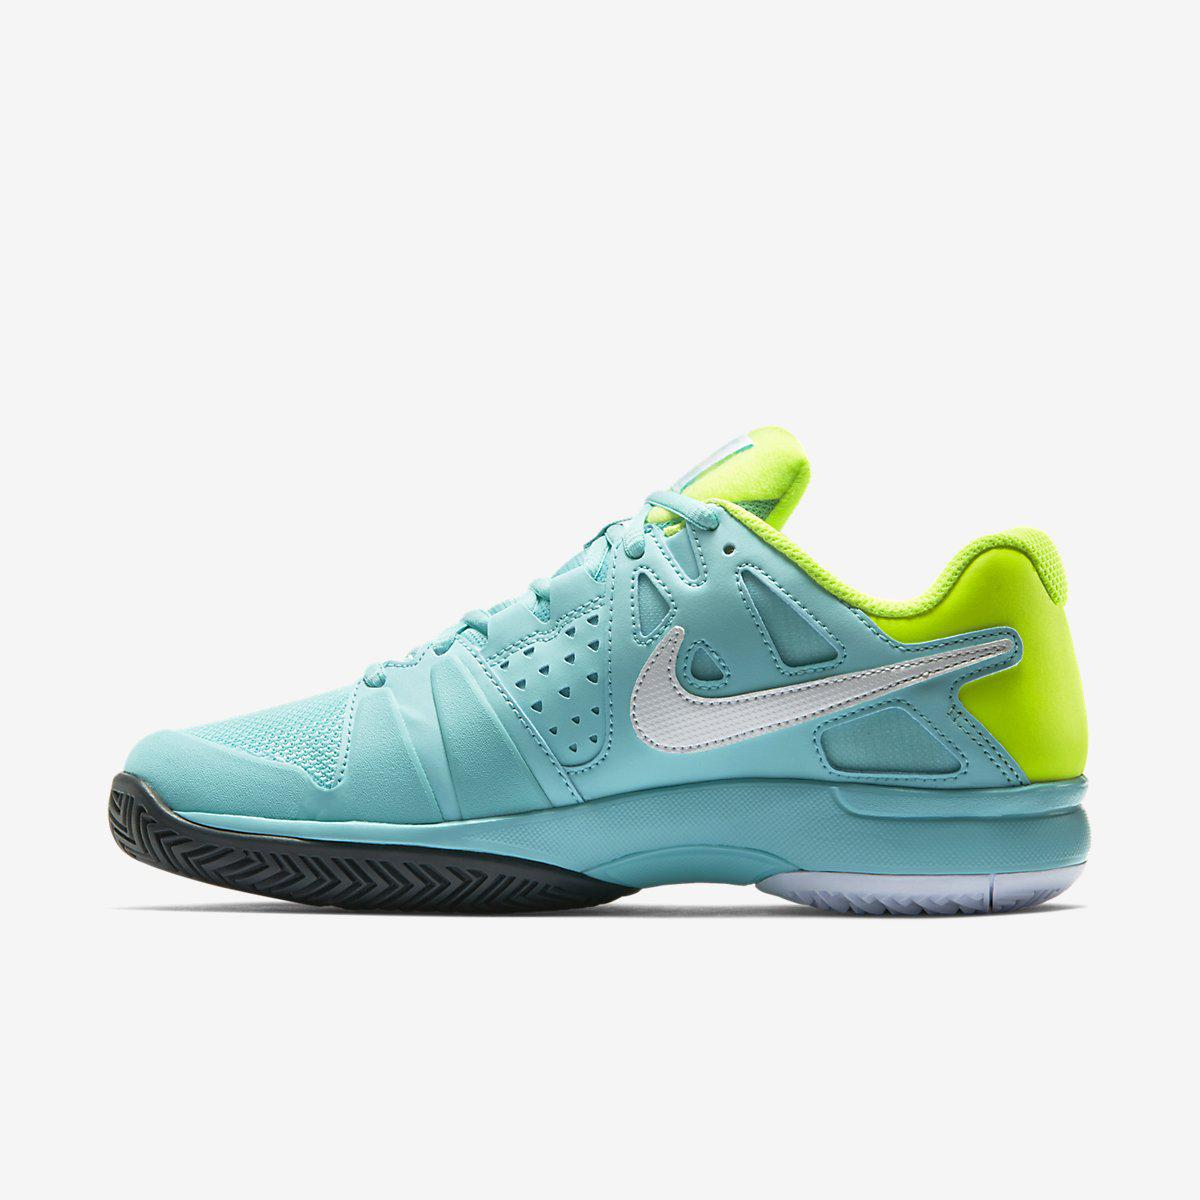 nike tennis shoes aqua